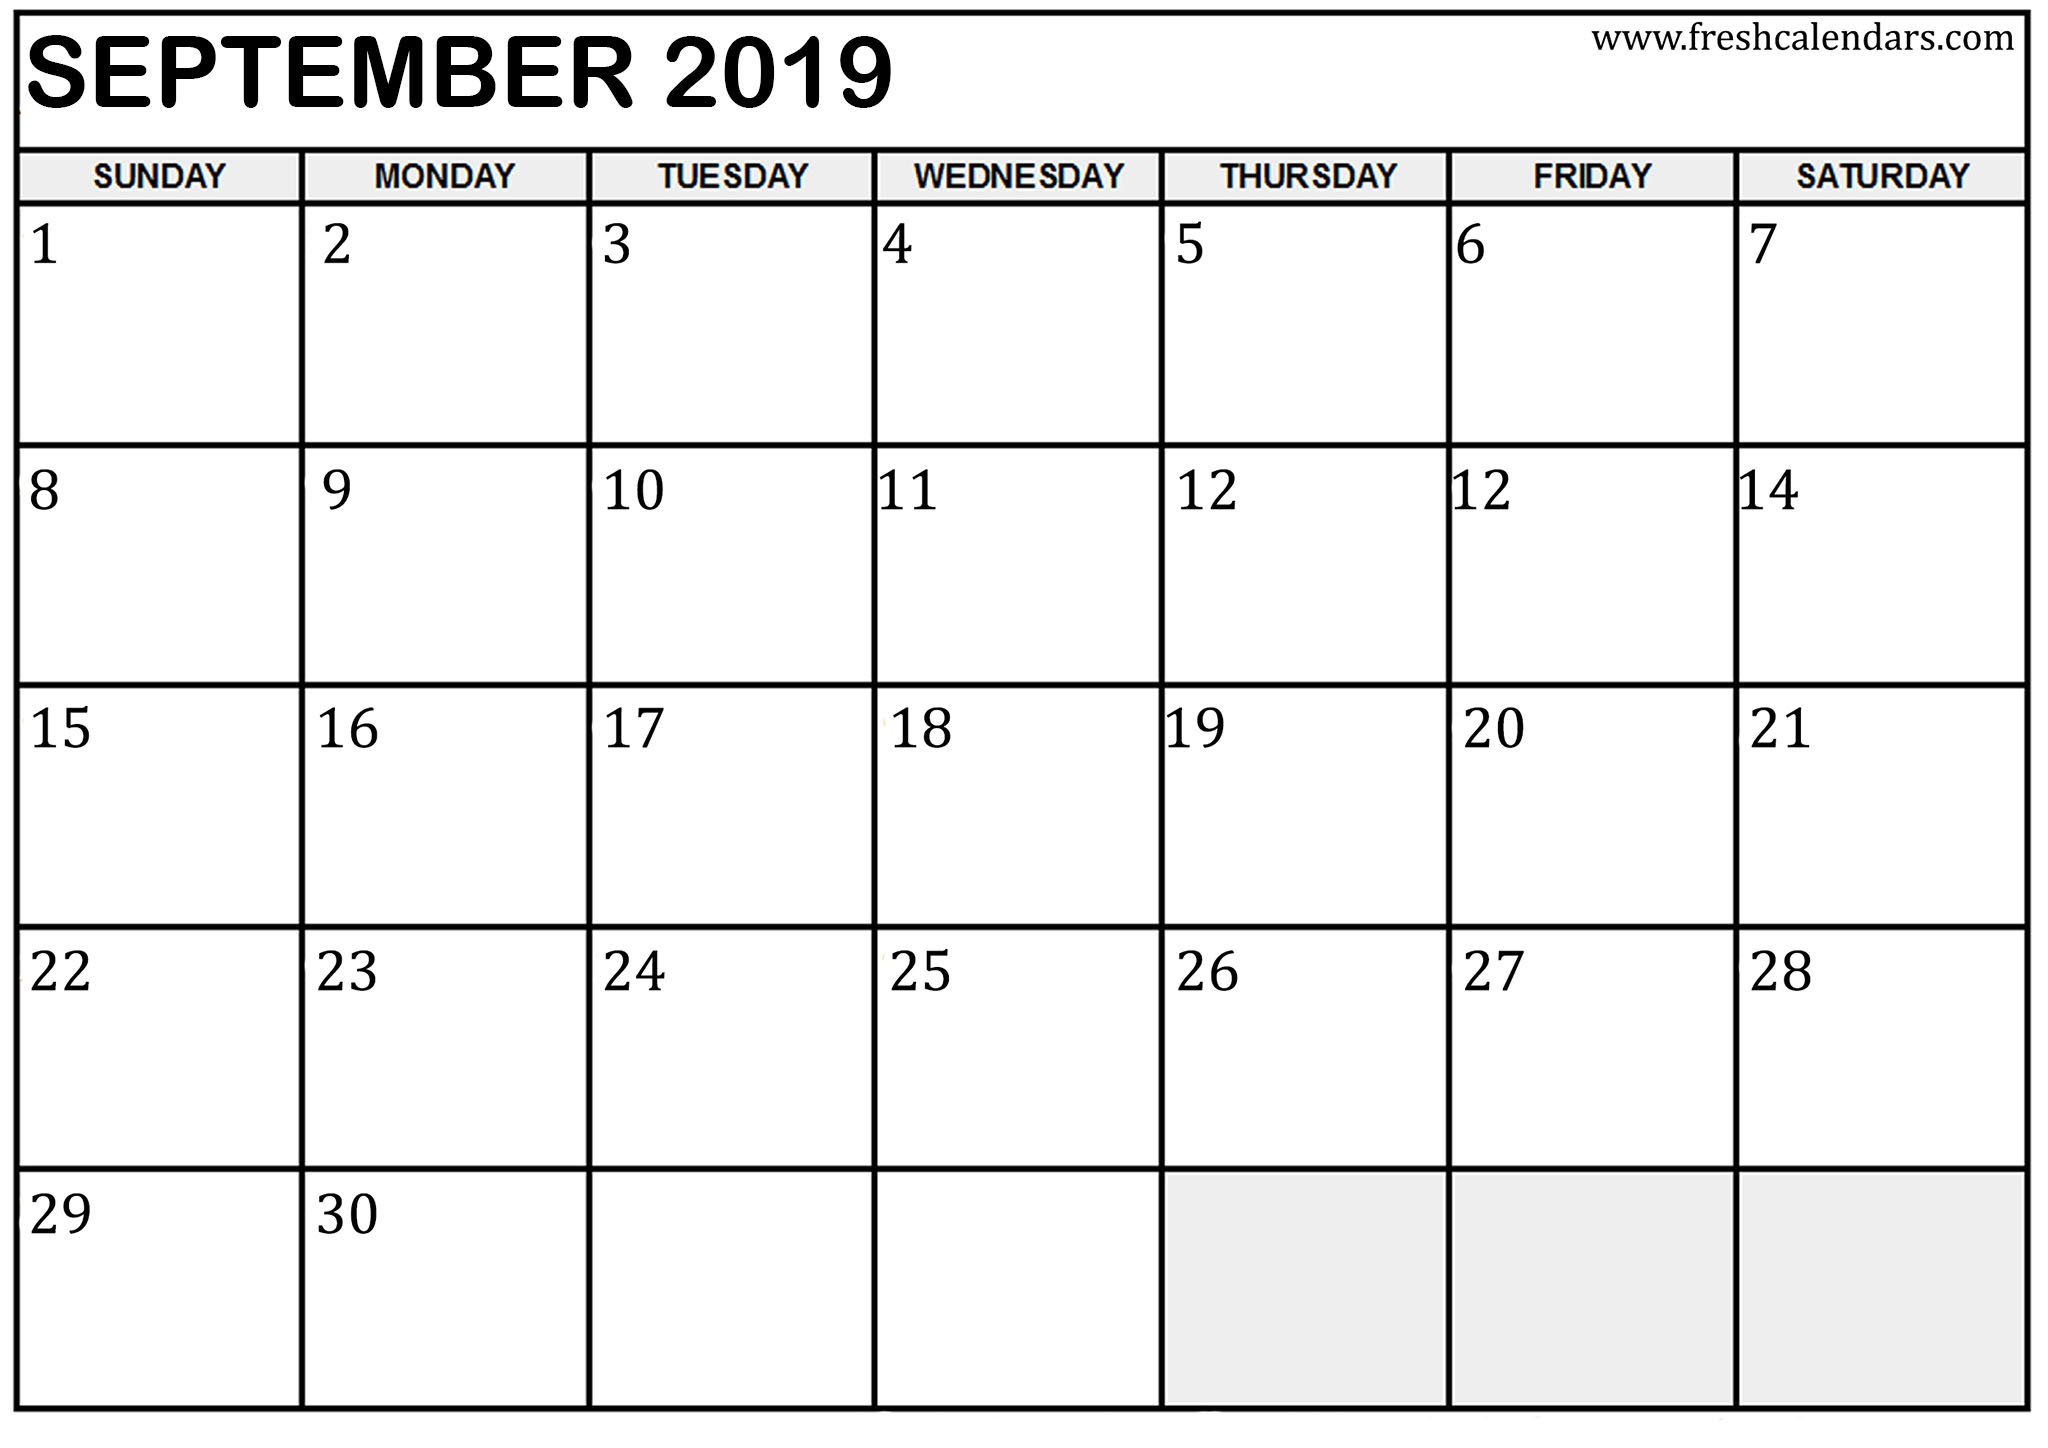 september 2019 calendar template online